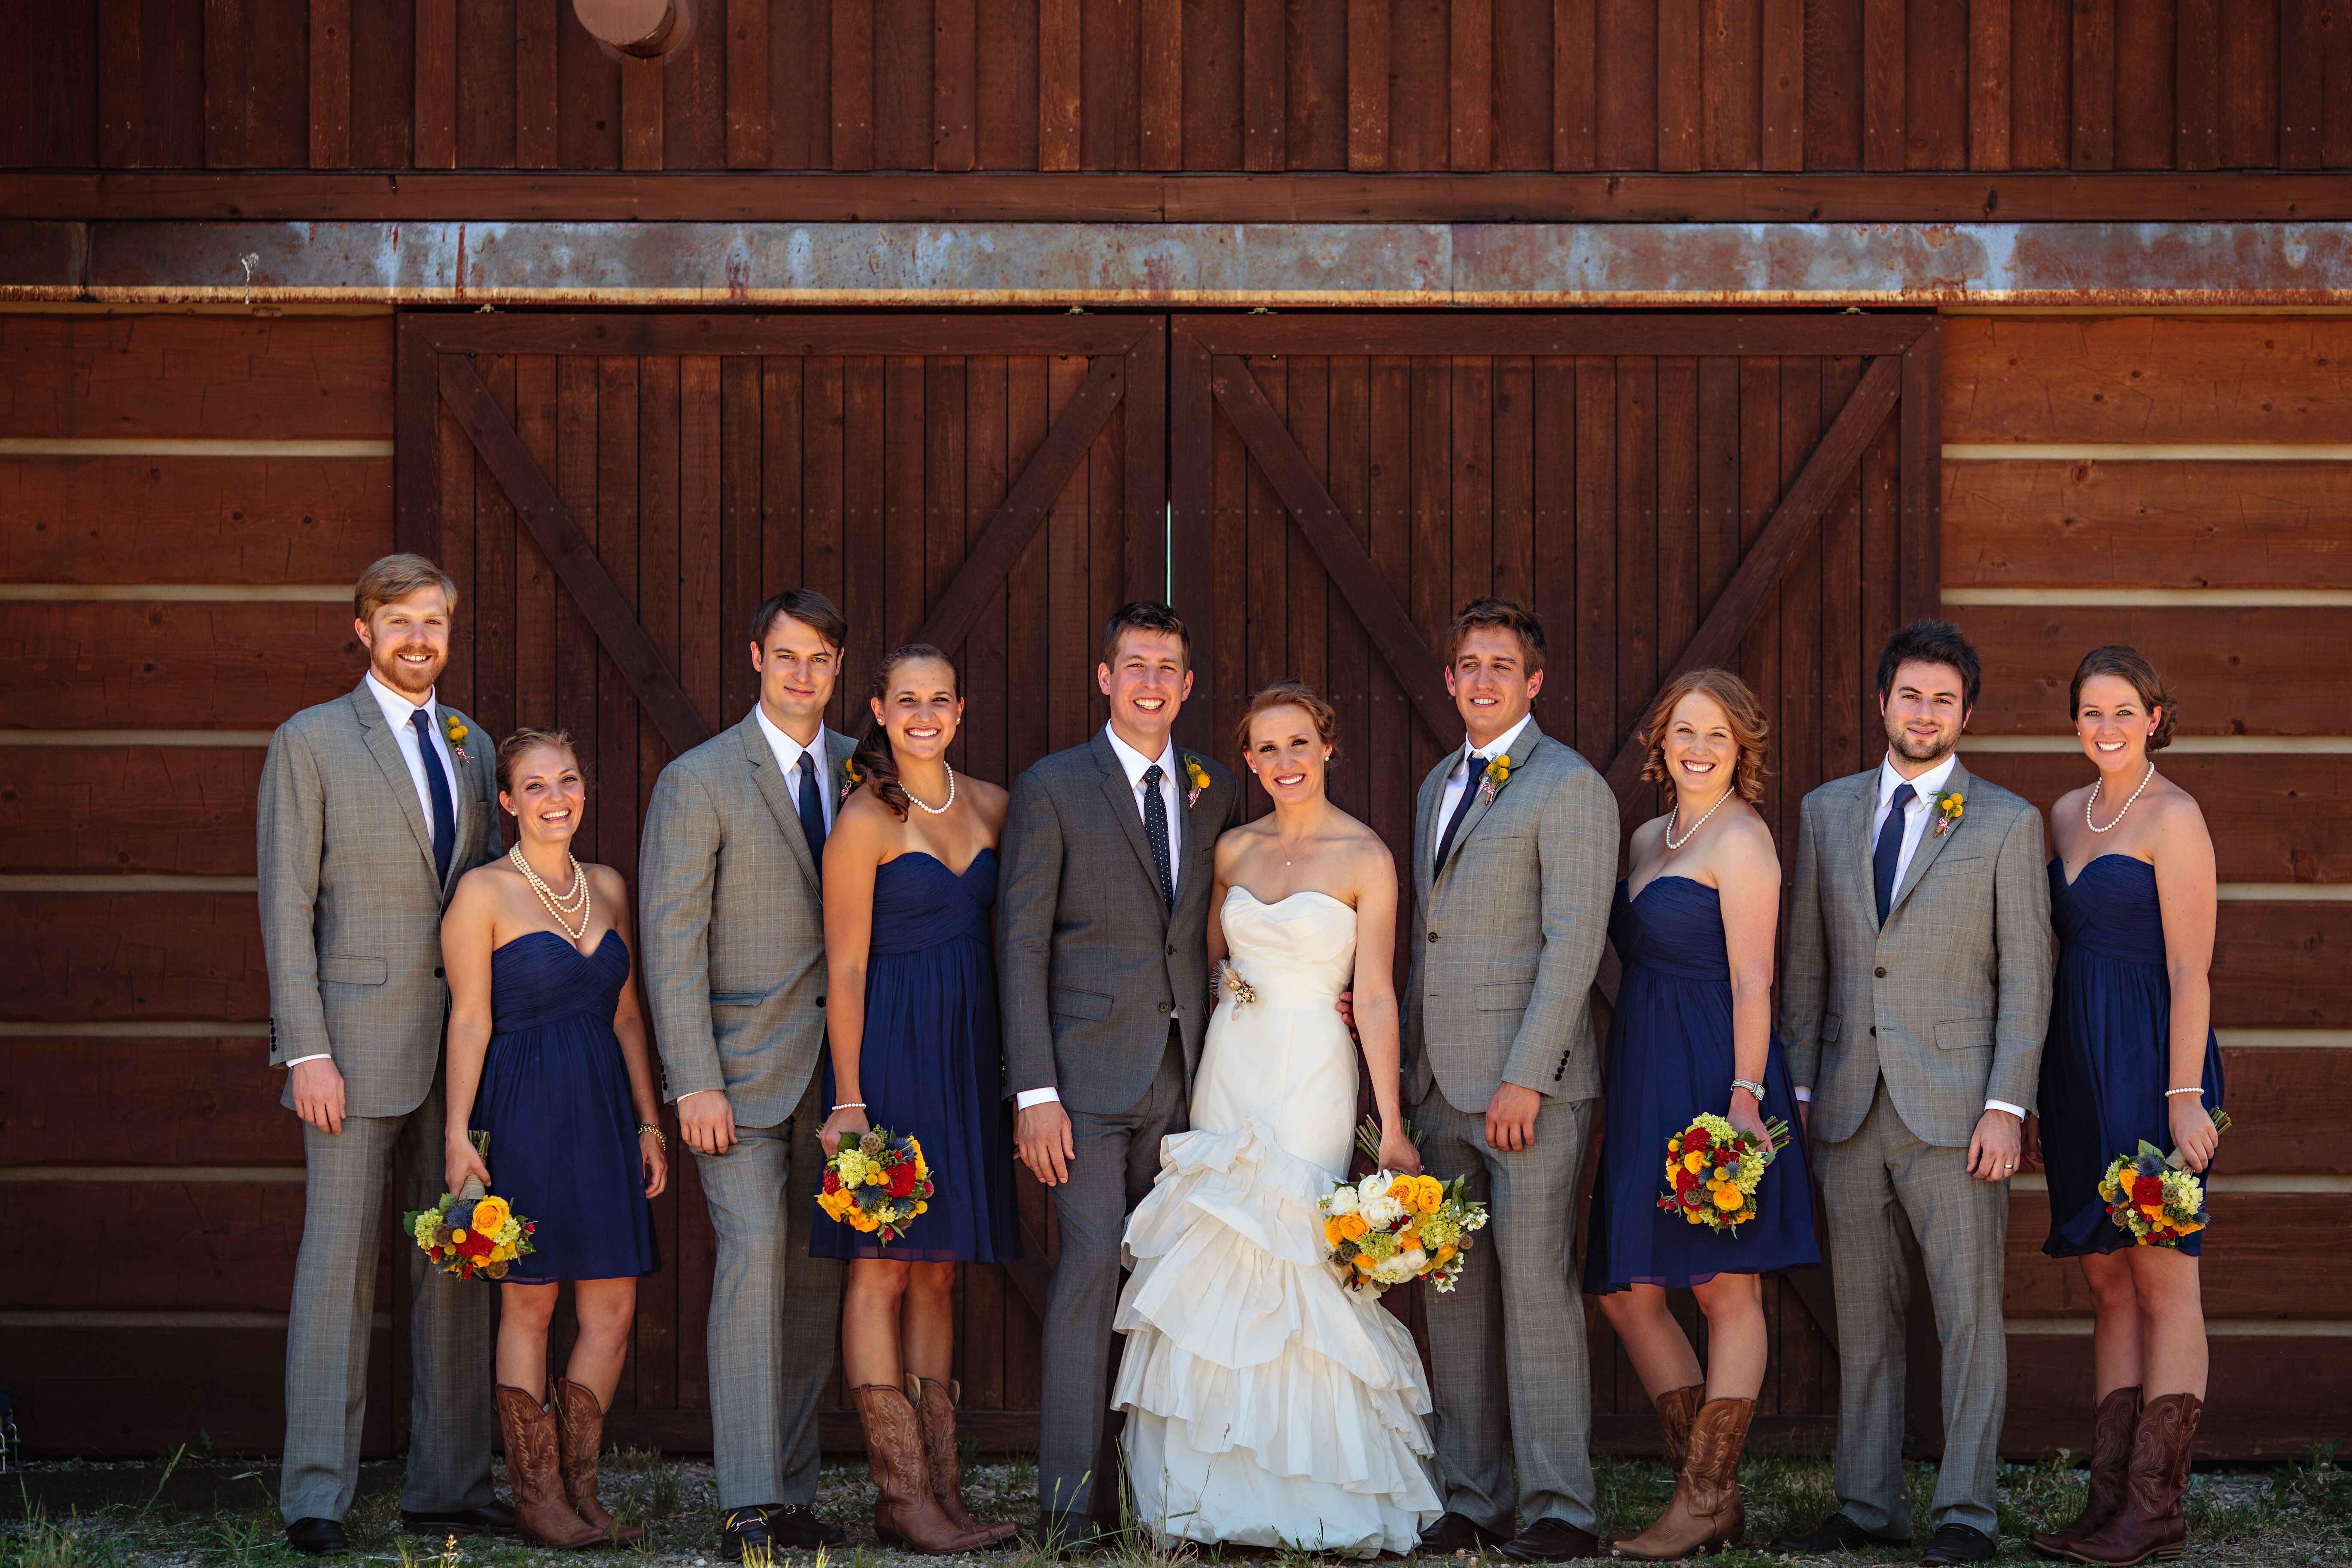 Gray and Navy Groomsmen Suits